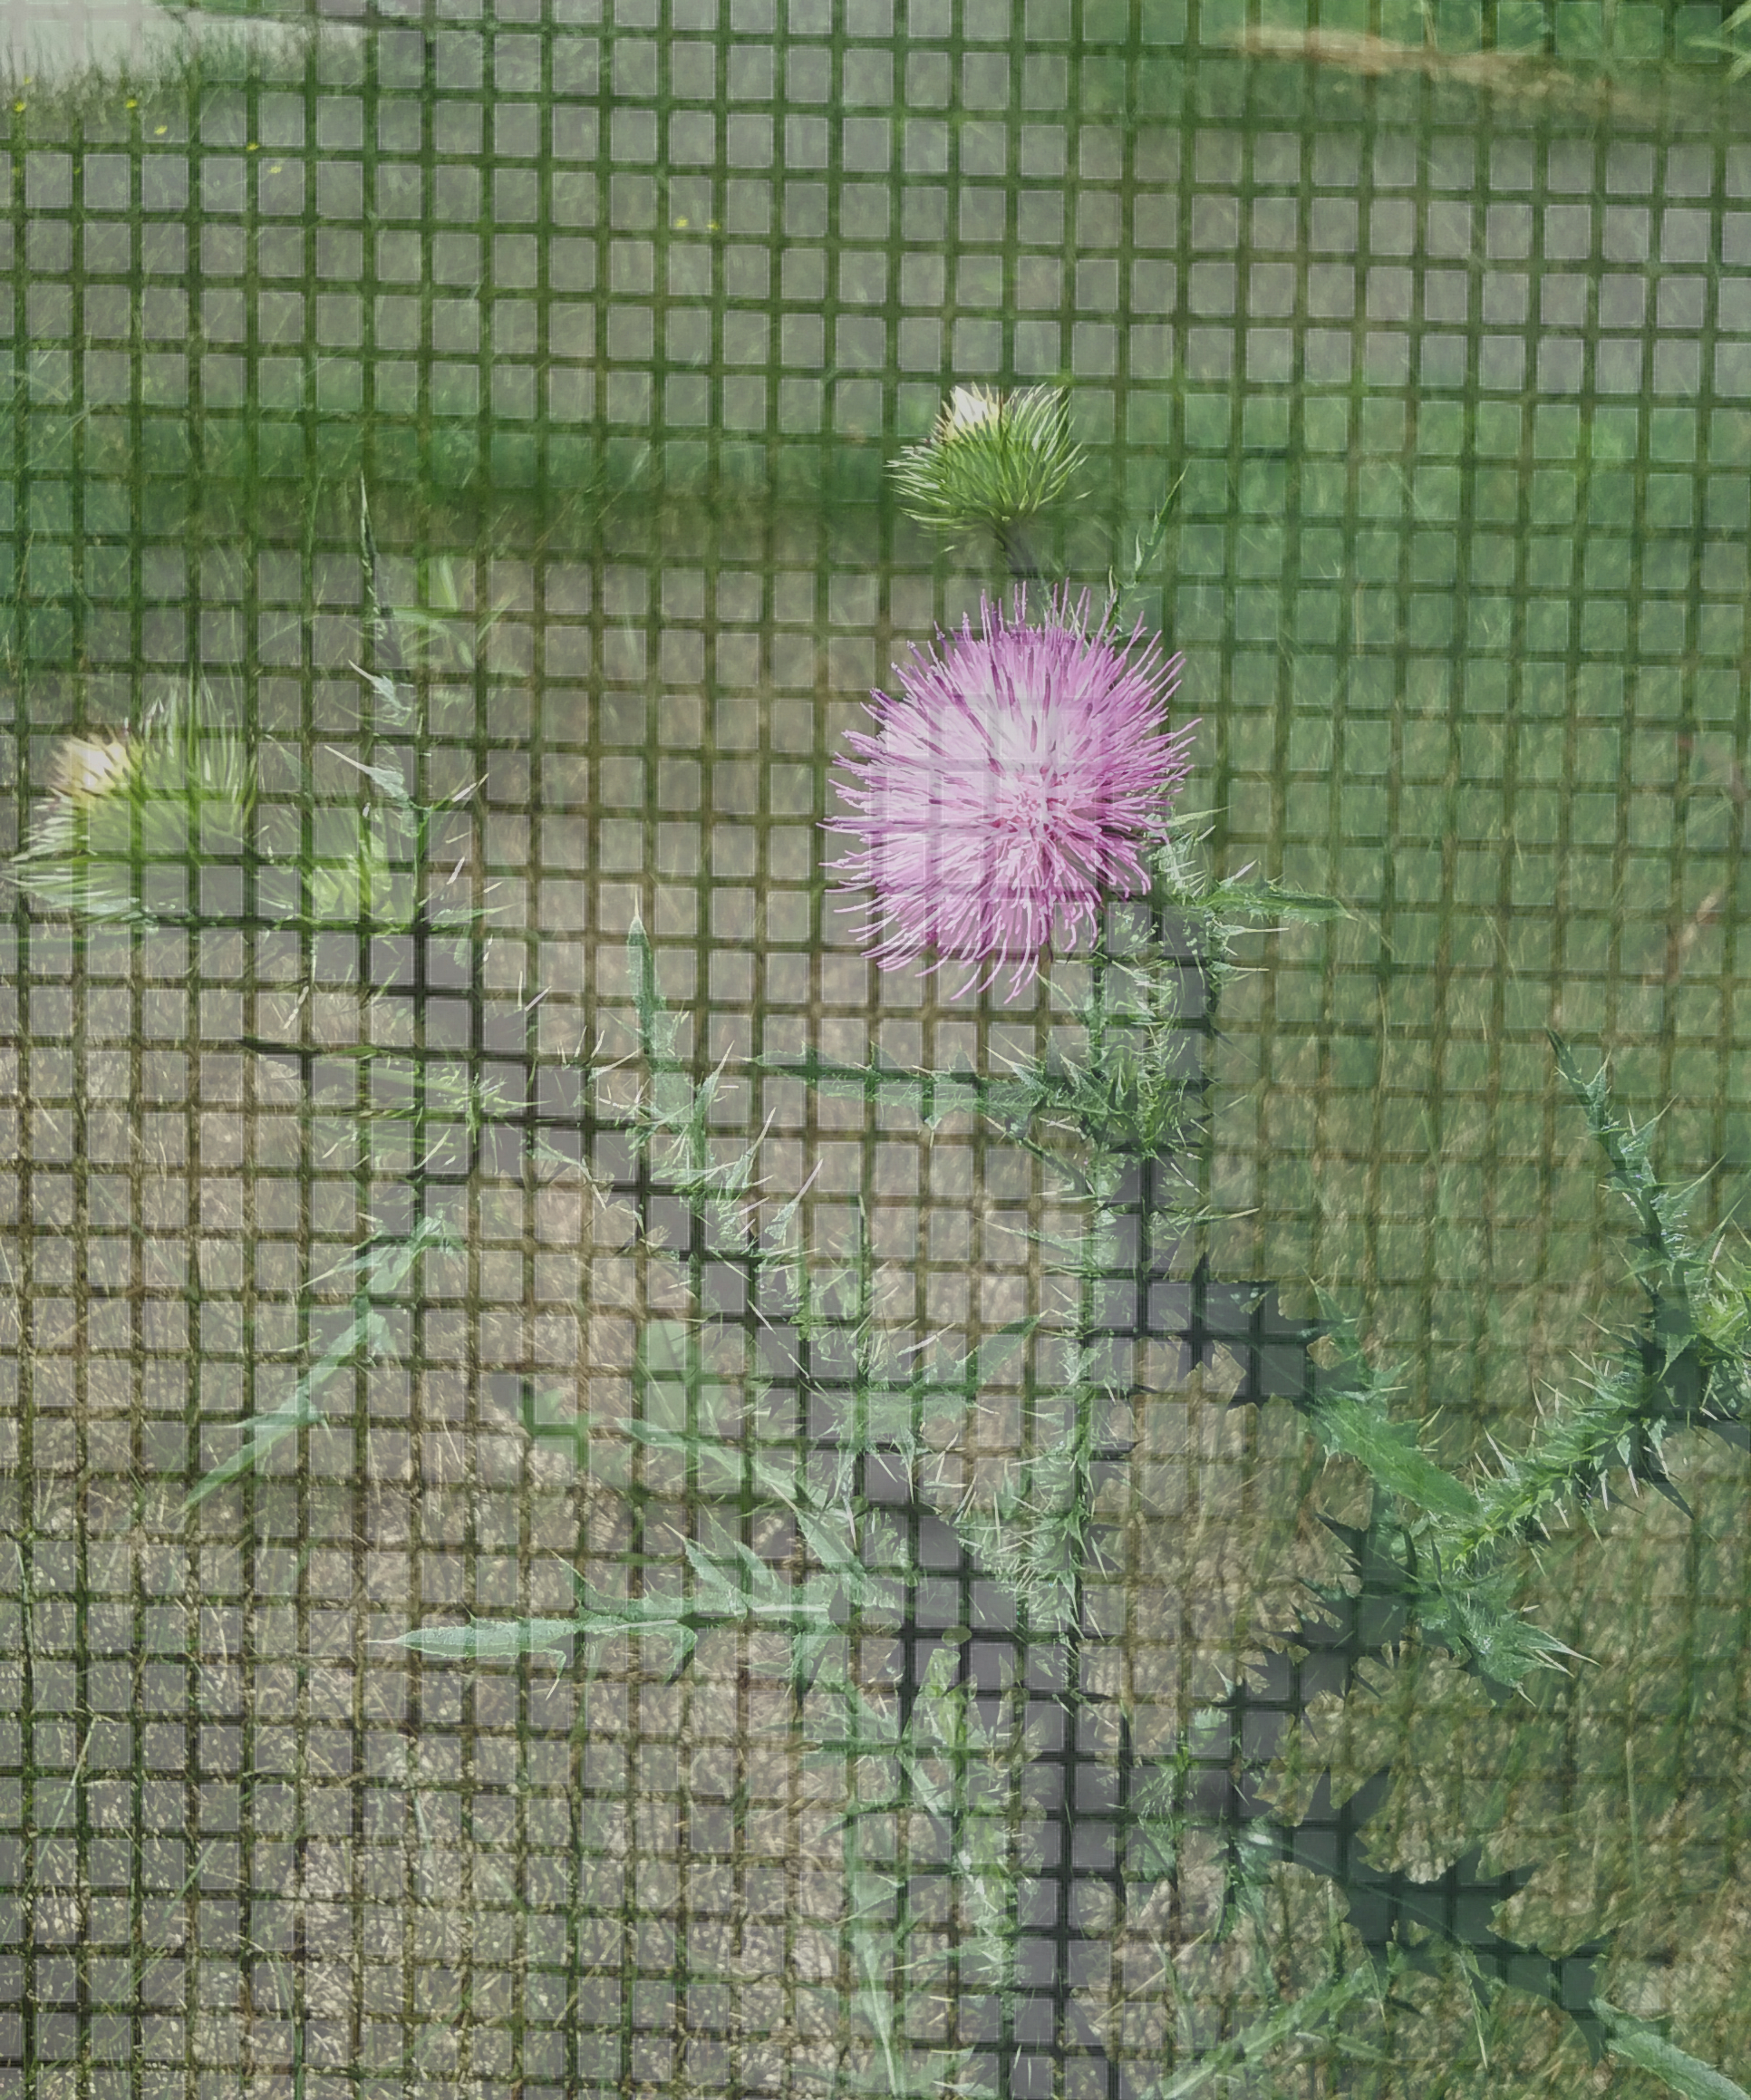 Thistle and screen merged, July 11, 2020.